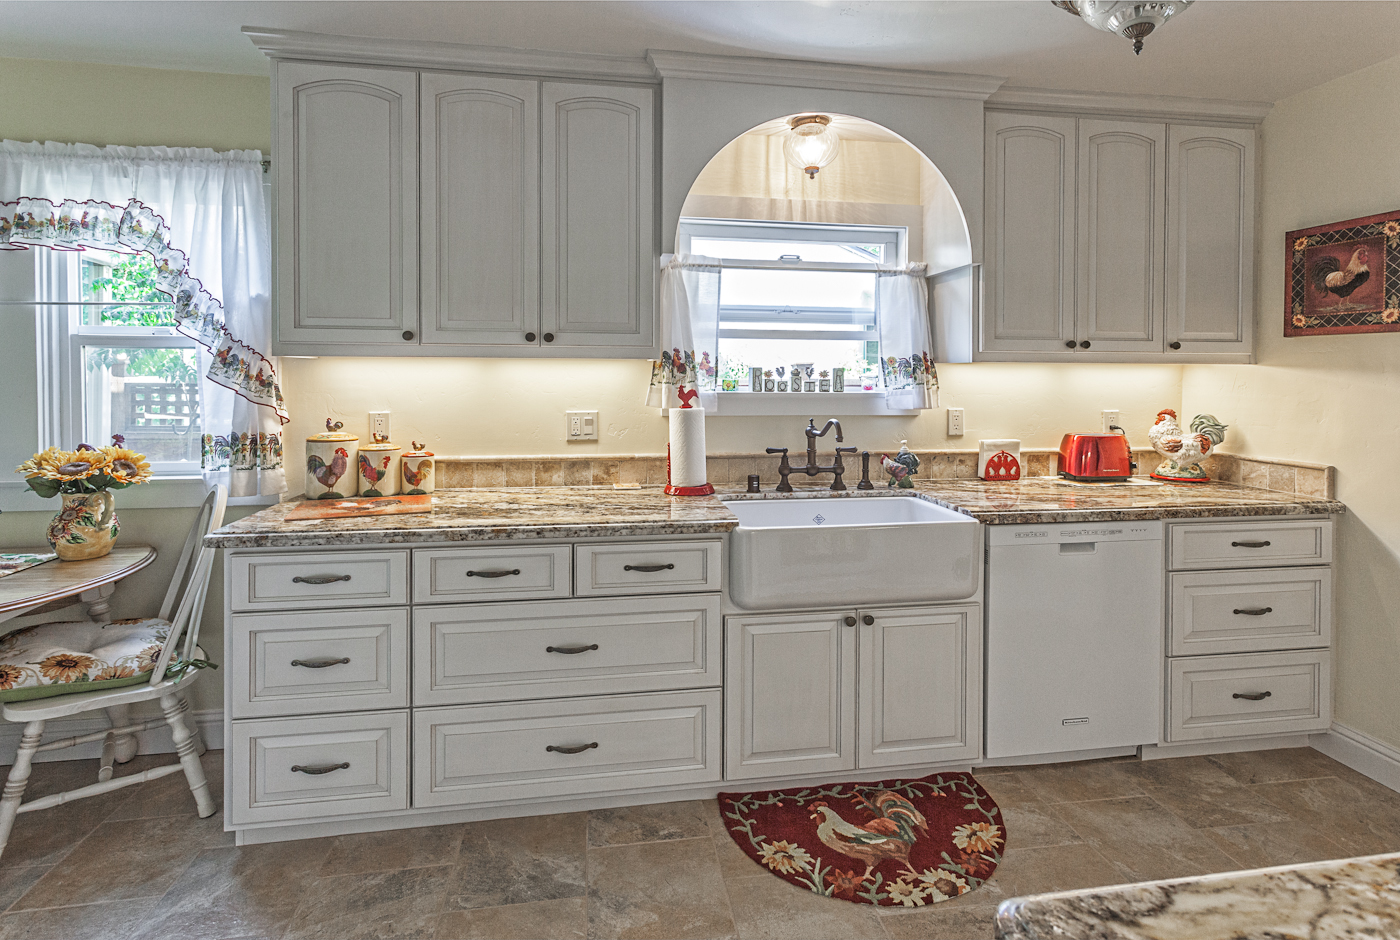 Kitchen case study white country cabinets for Turning a galley kitchen into an open kitchen